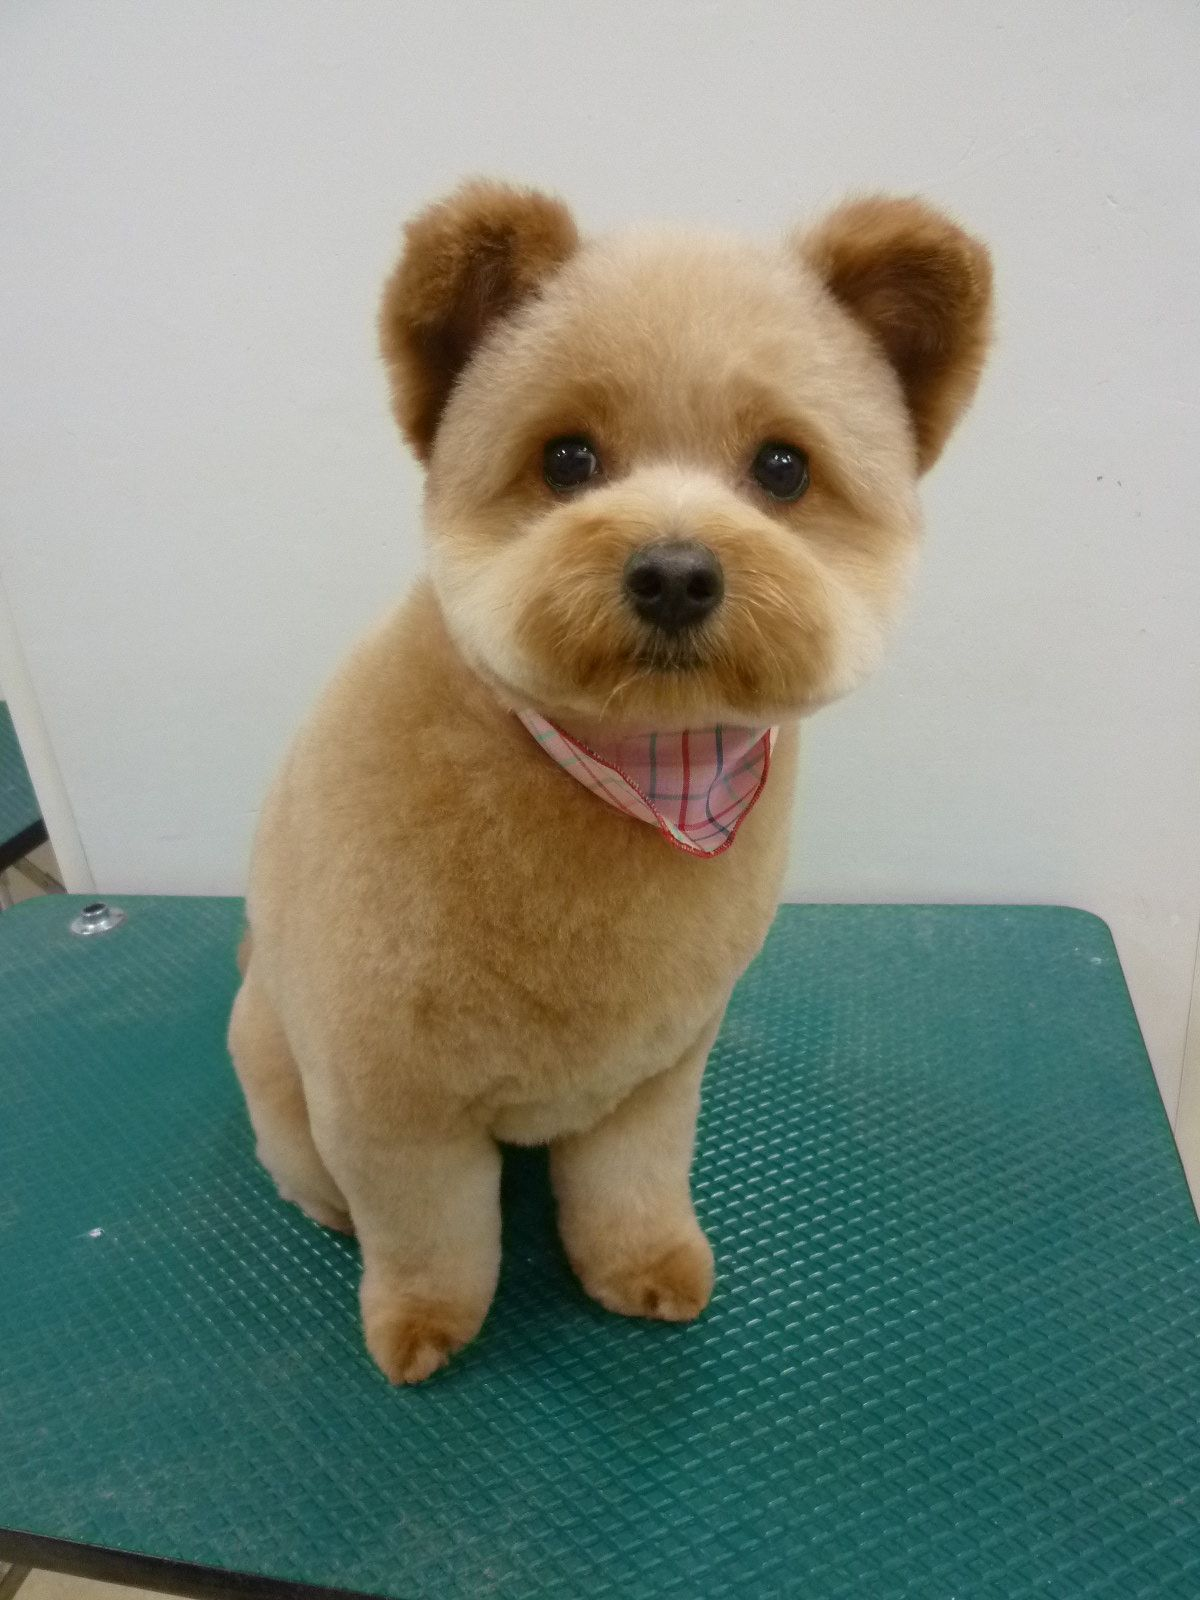 Pictures Of Teddy Bear Haircut For Dogs Bedwalls